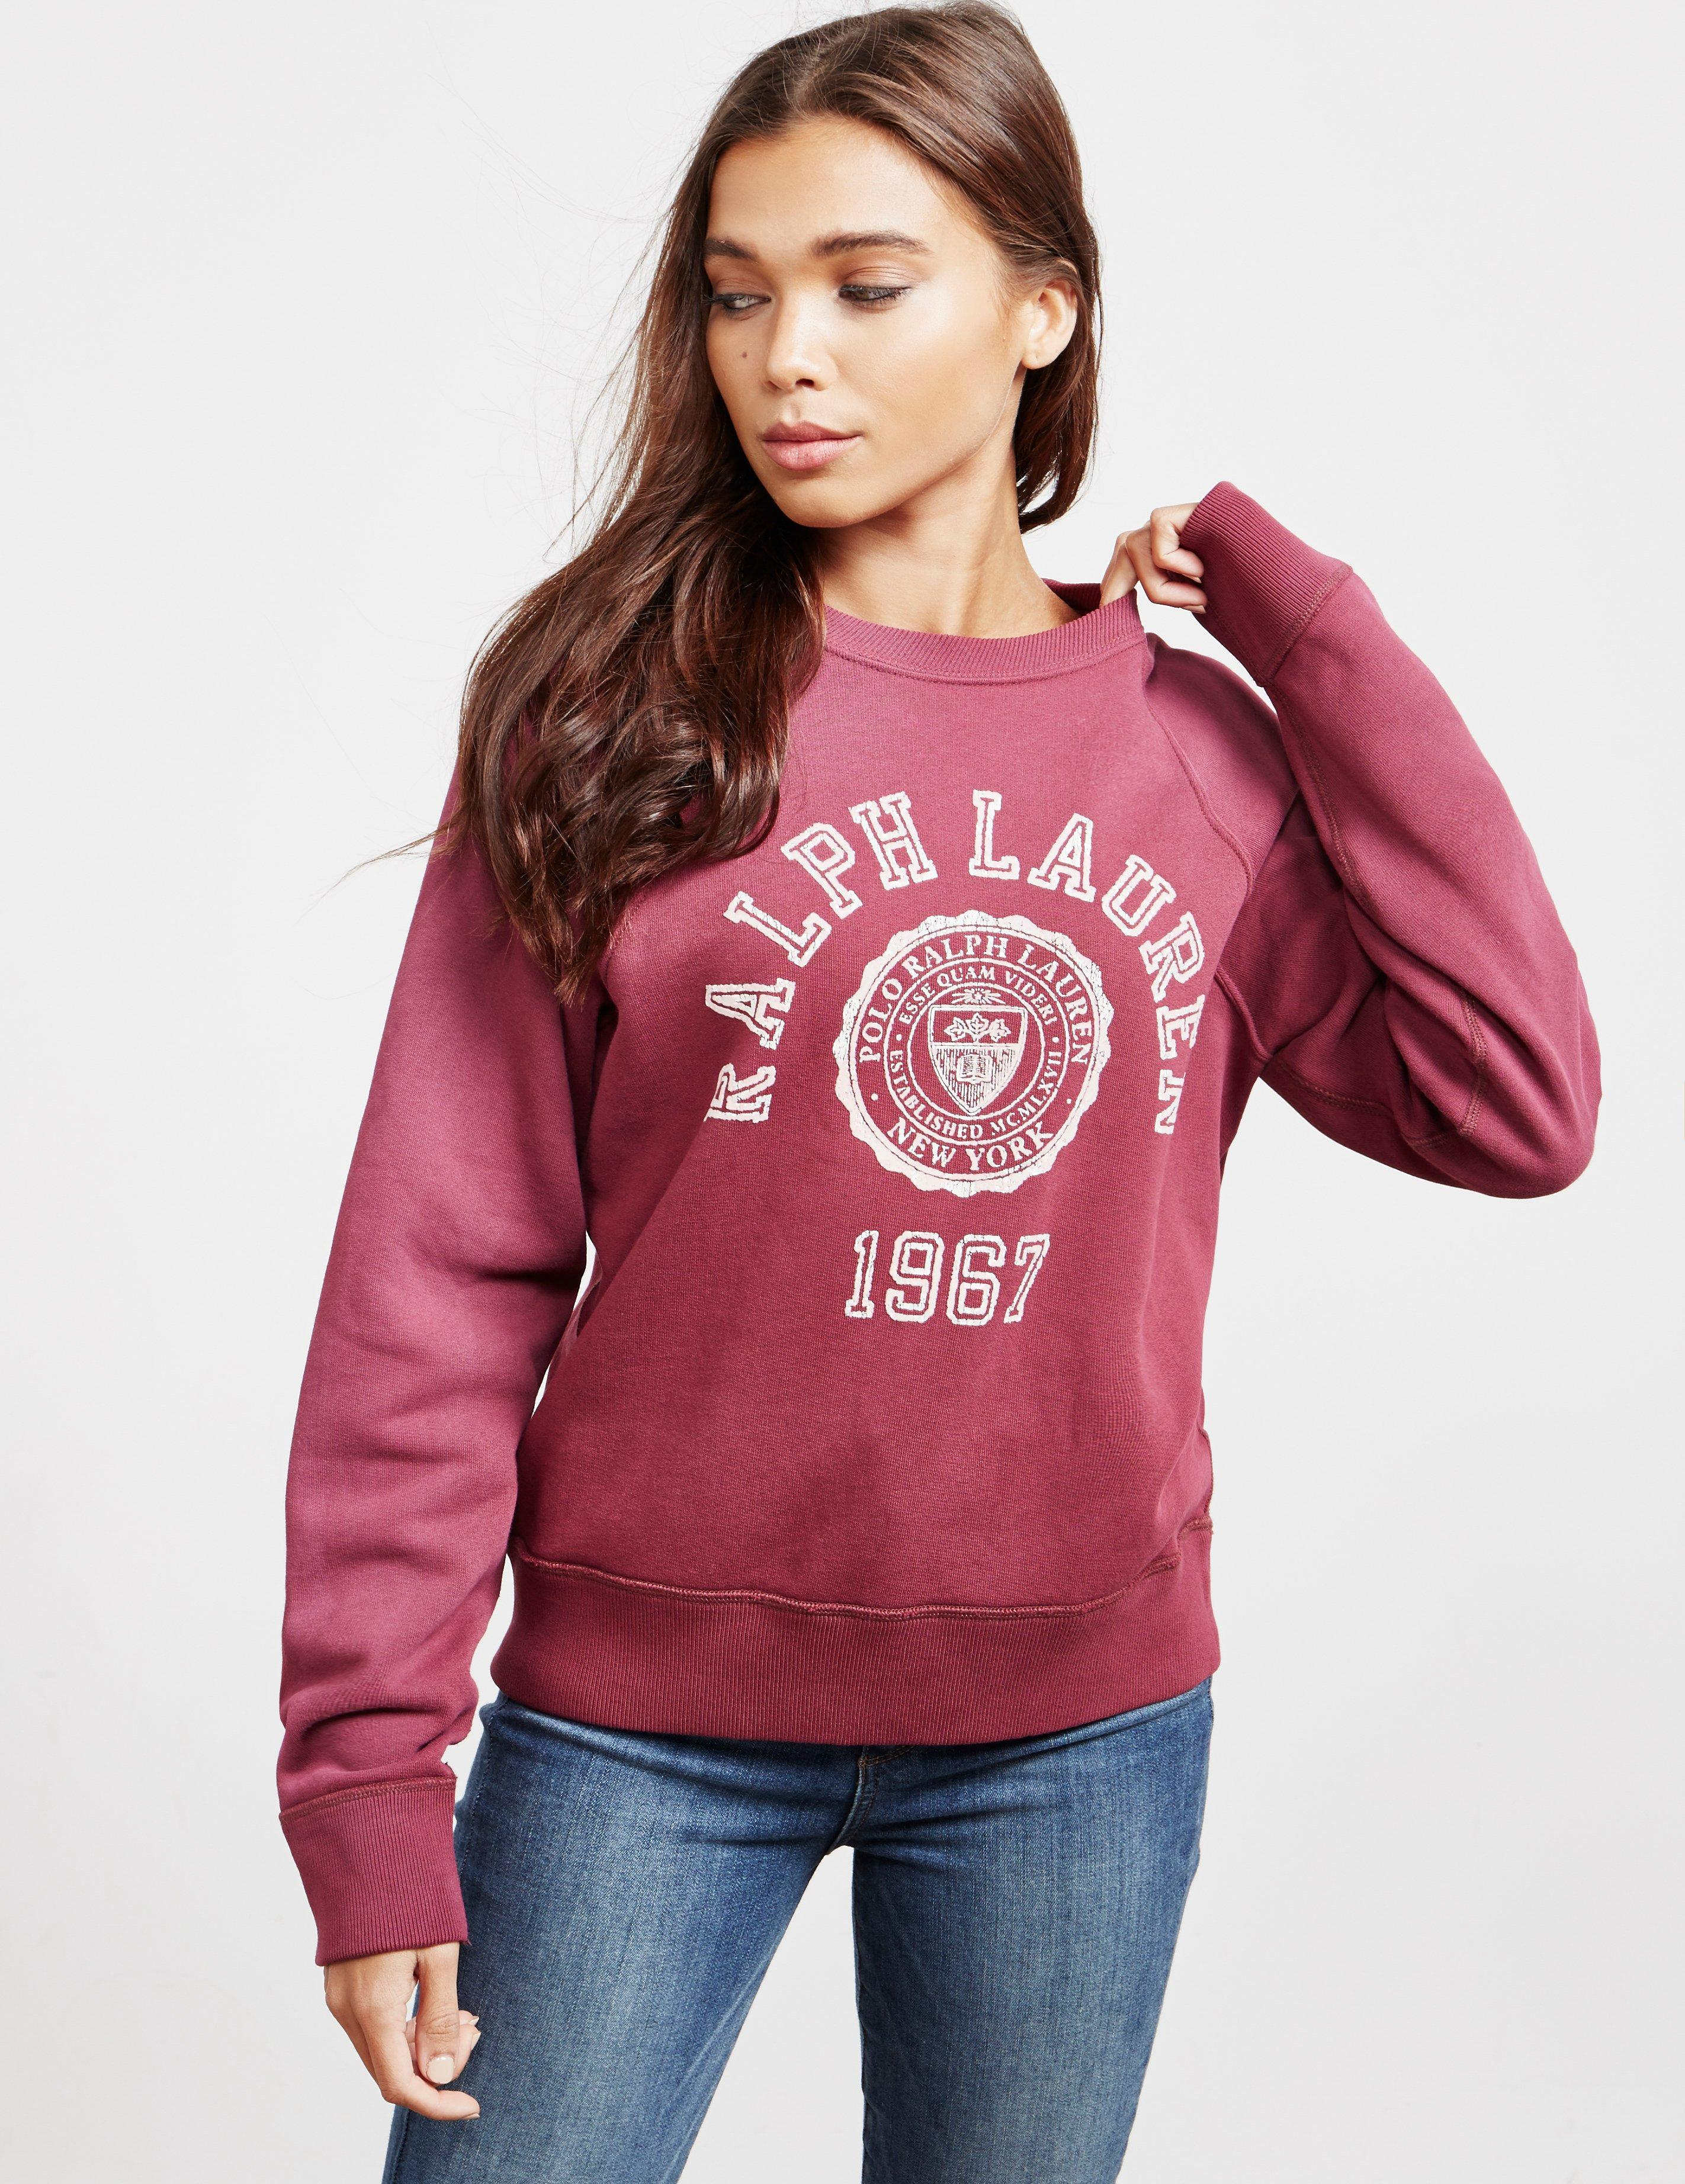 145f02f4d512 Lyst - Polo Ralph Lauren College Sweatshirt Red in Red - Save 58%